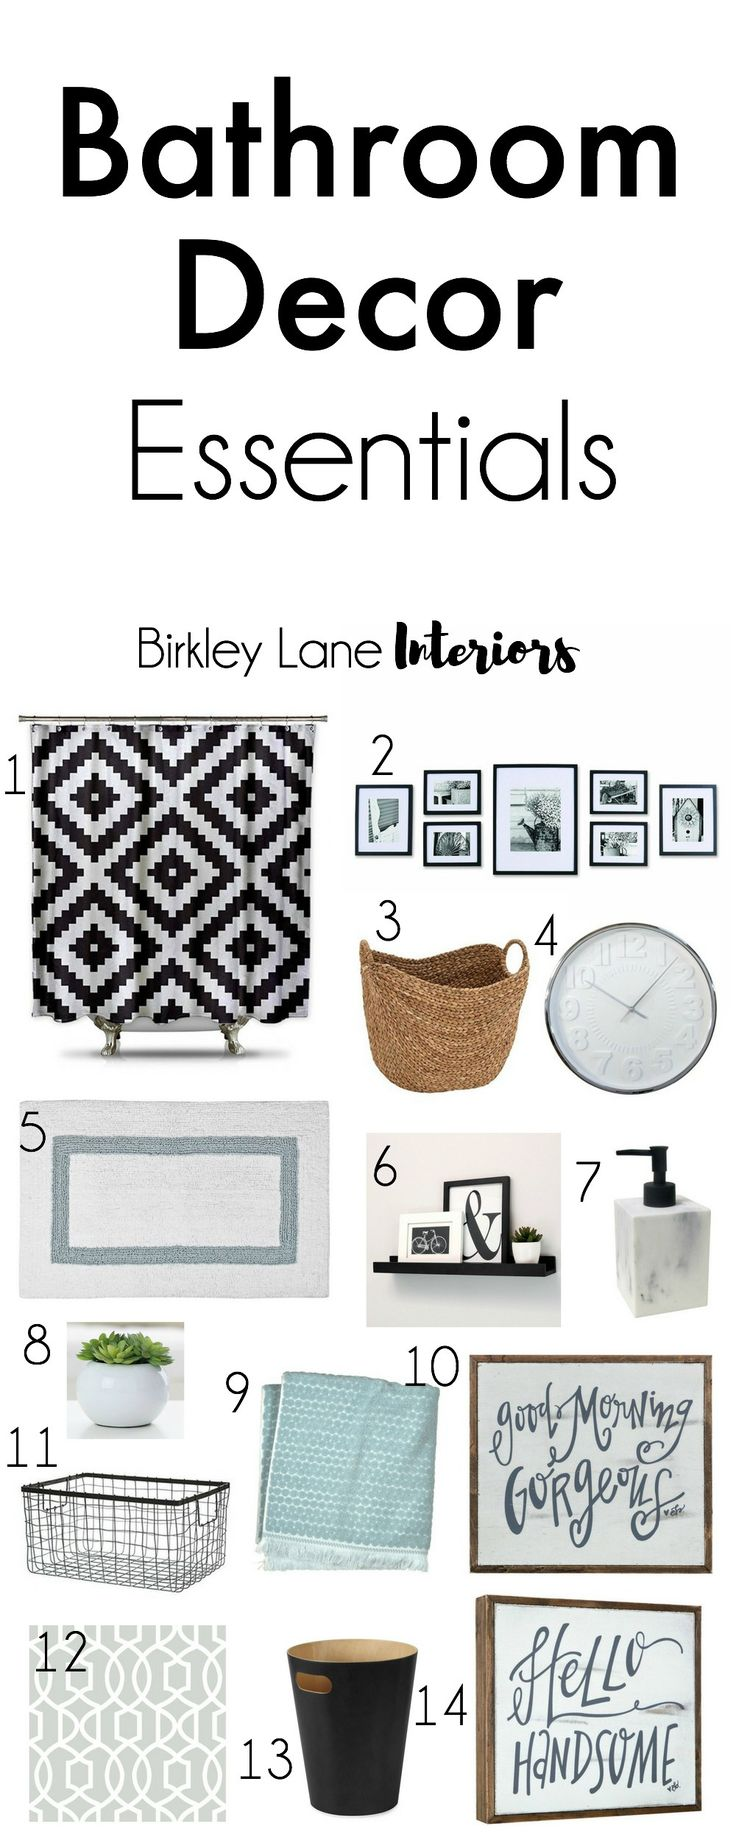 Love the shower curtain and art!  ~ Great pin! For Oahu architectural design visit http://ownerbuiltdesign.com